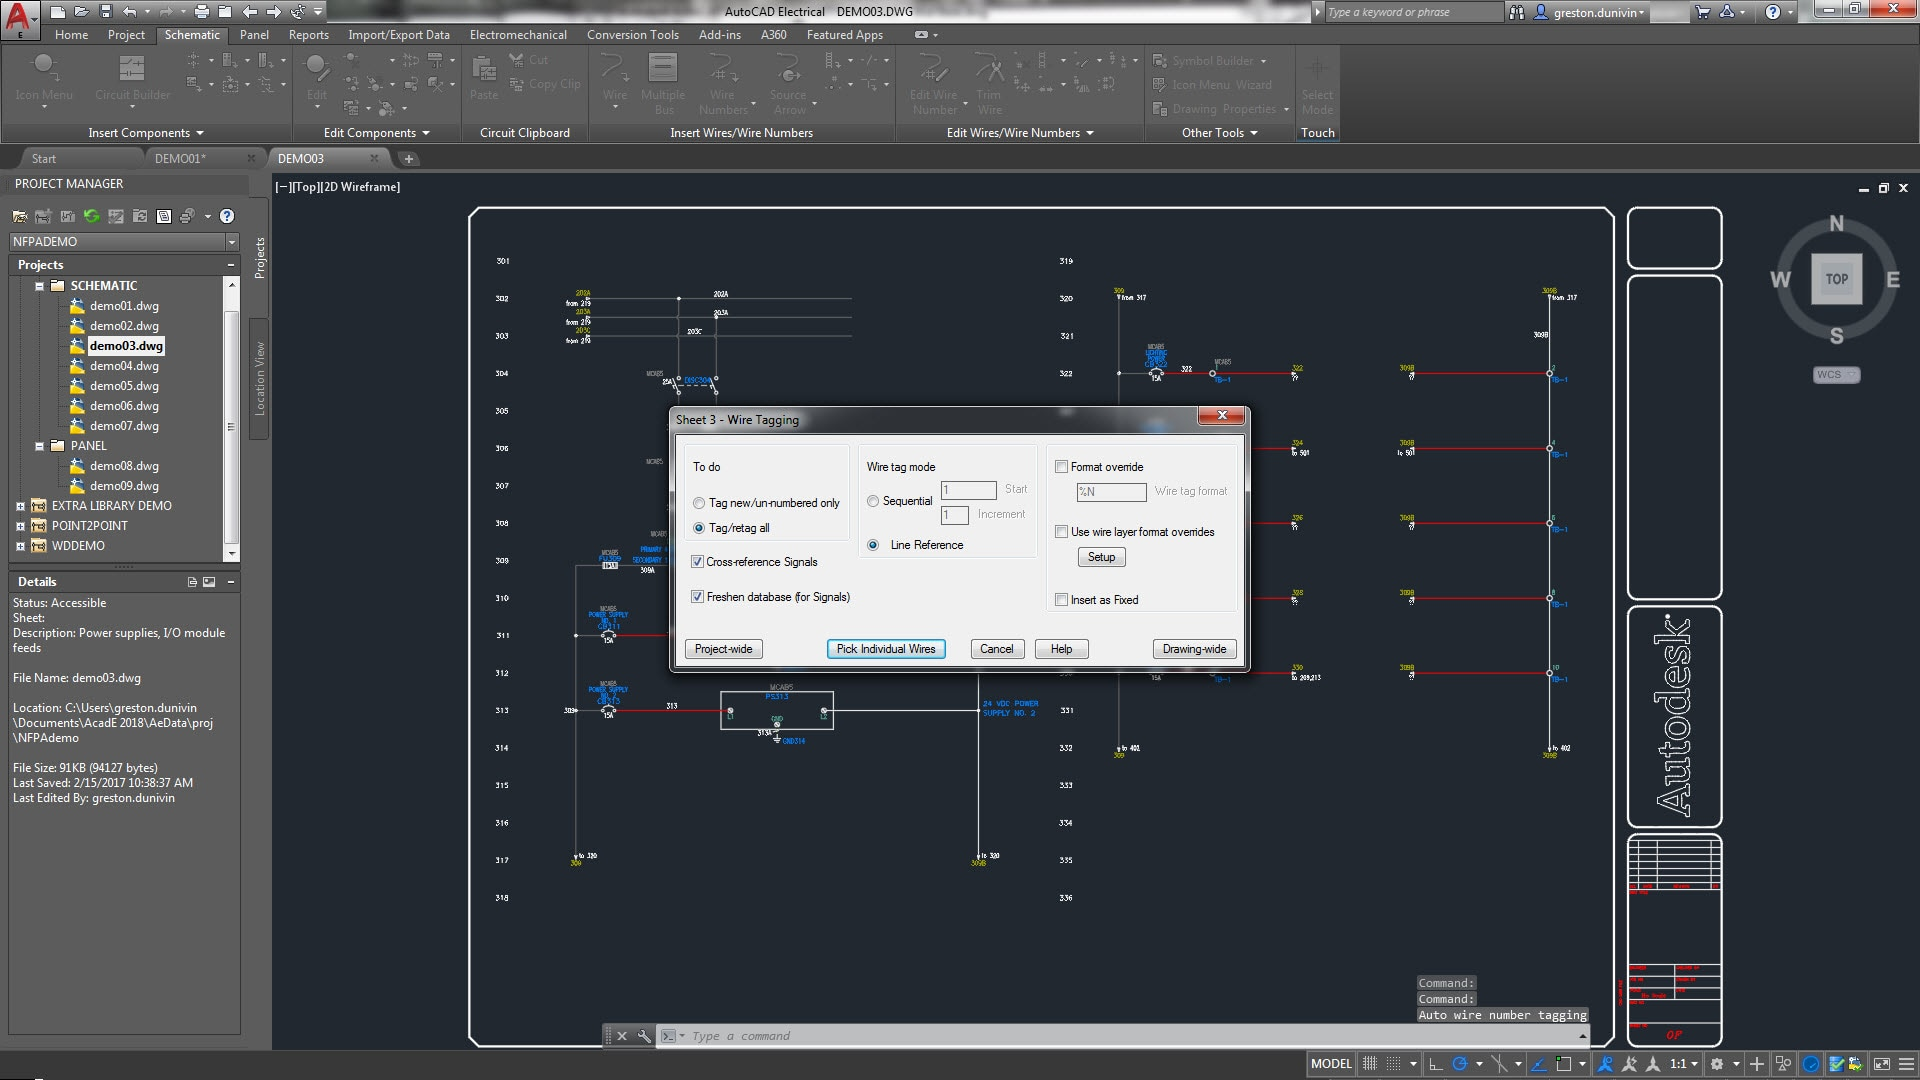 The AutoCAD Electrical toolset includes wire numbering and component tagging